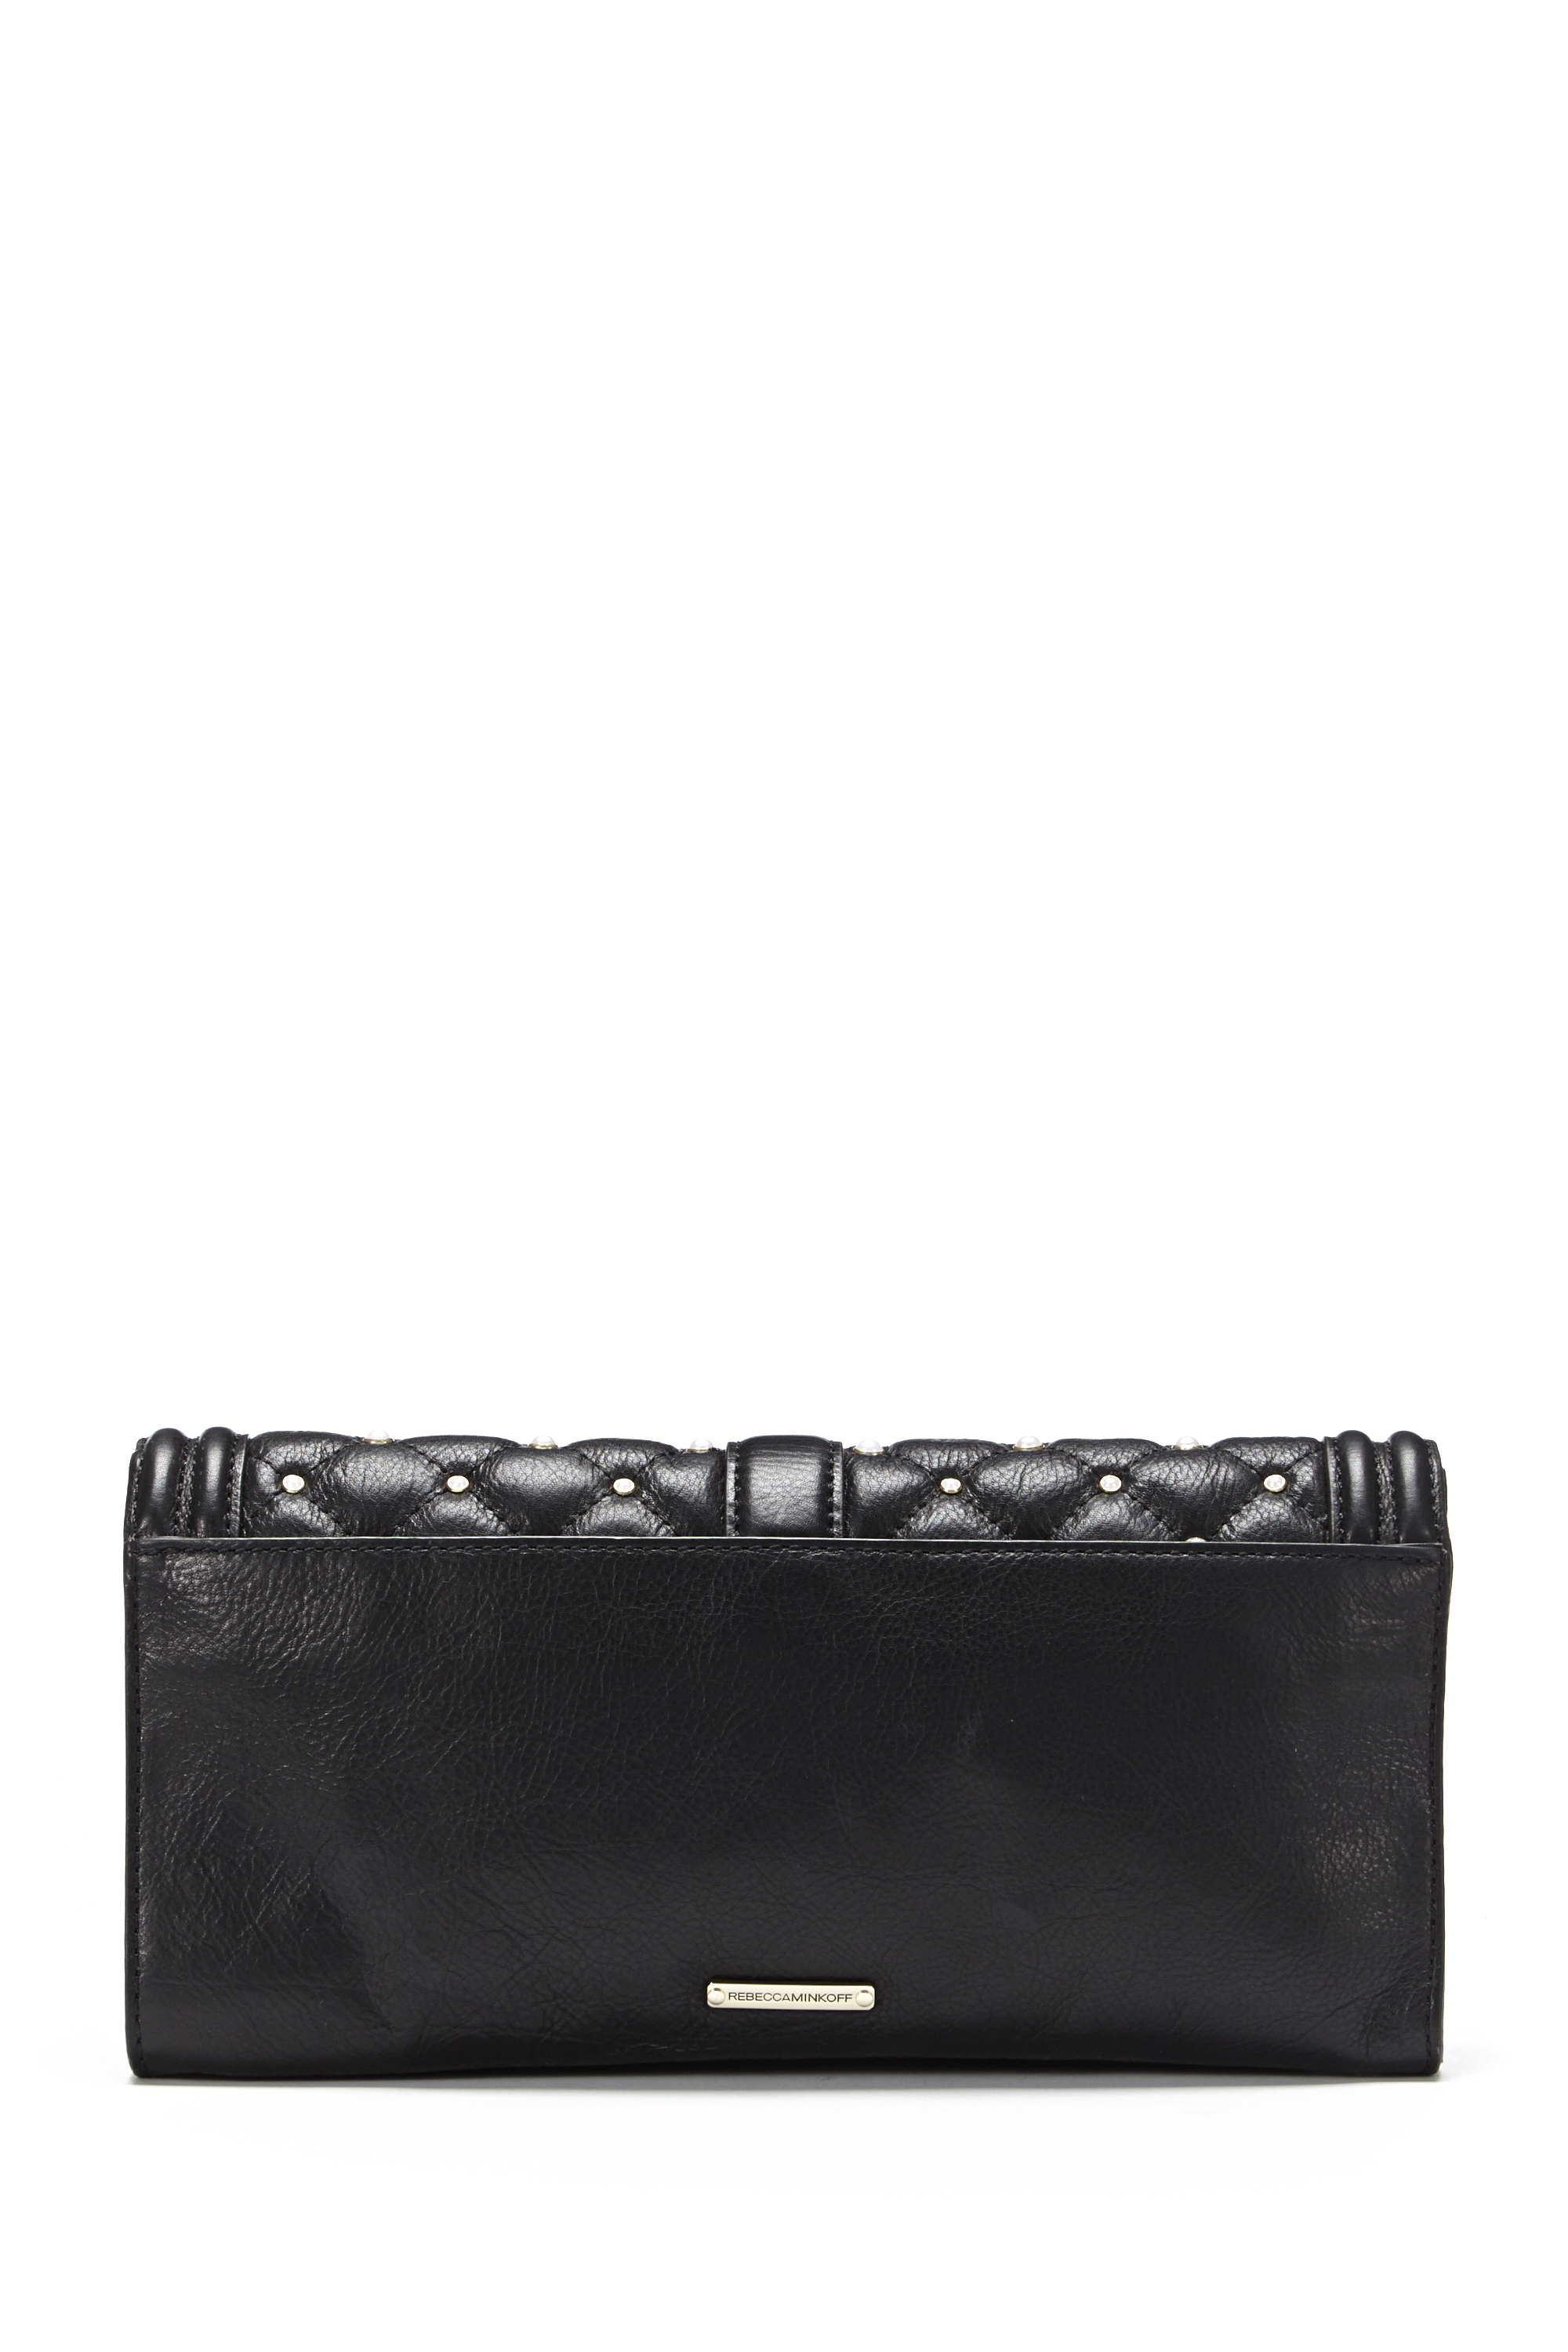 Rebecca Minkoff Love Clutch In Black Lyst